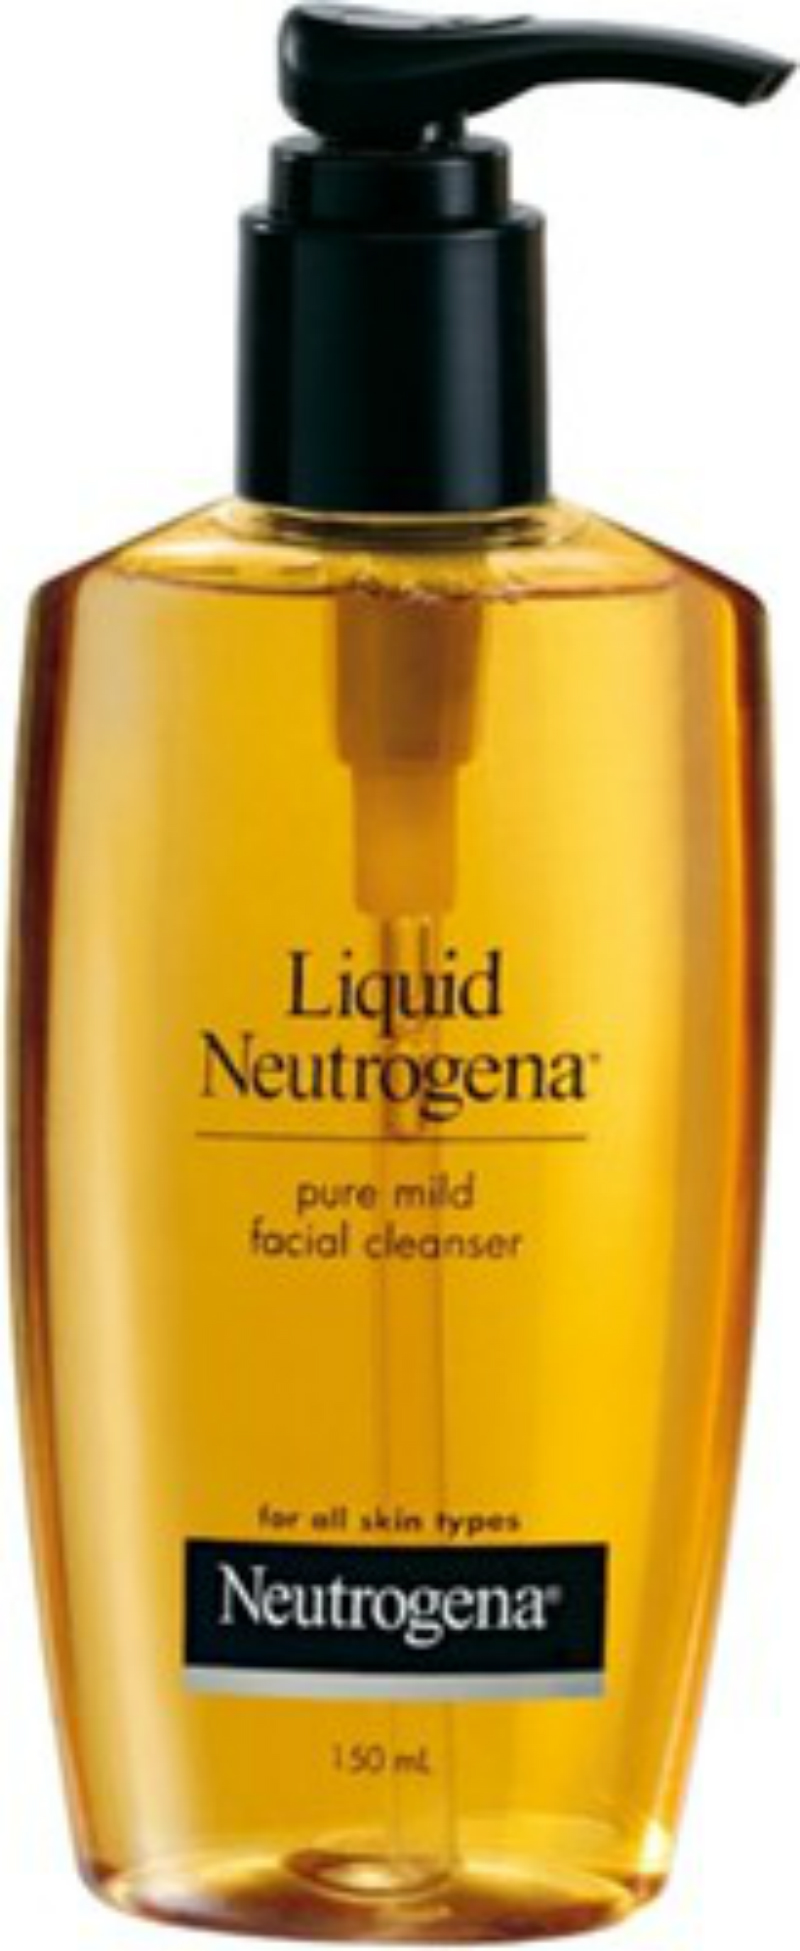 Neutrogena Liquid Pure Mild Facial Cleanser